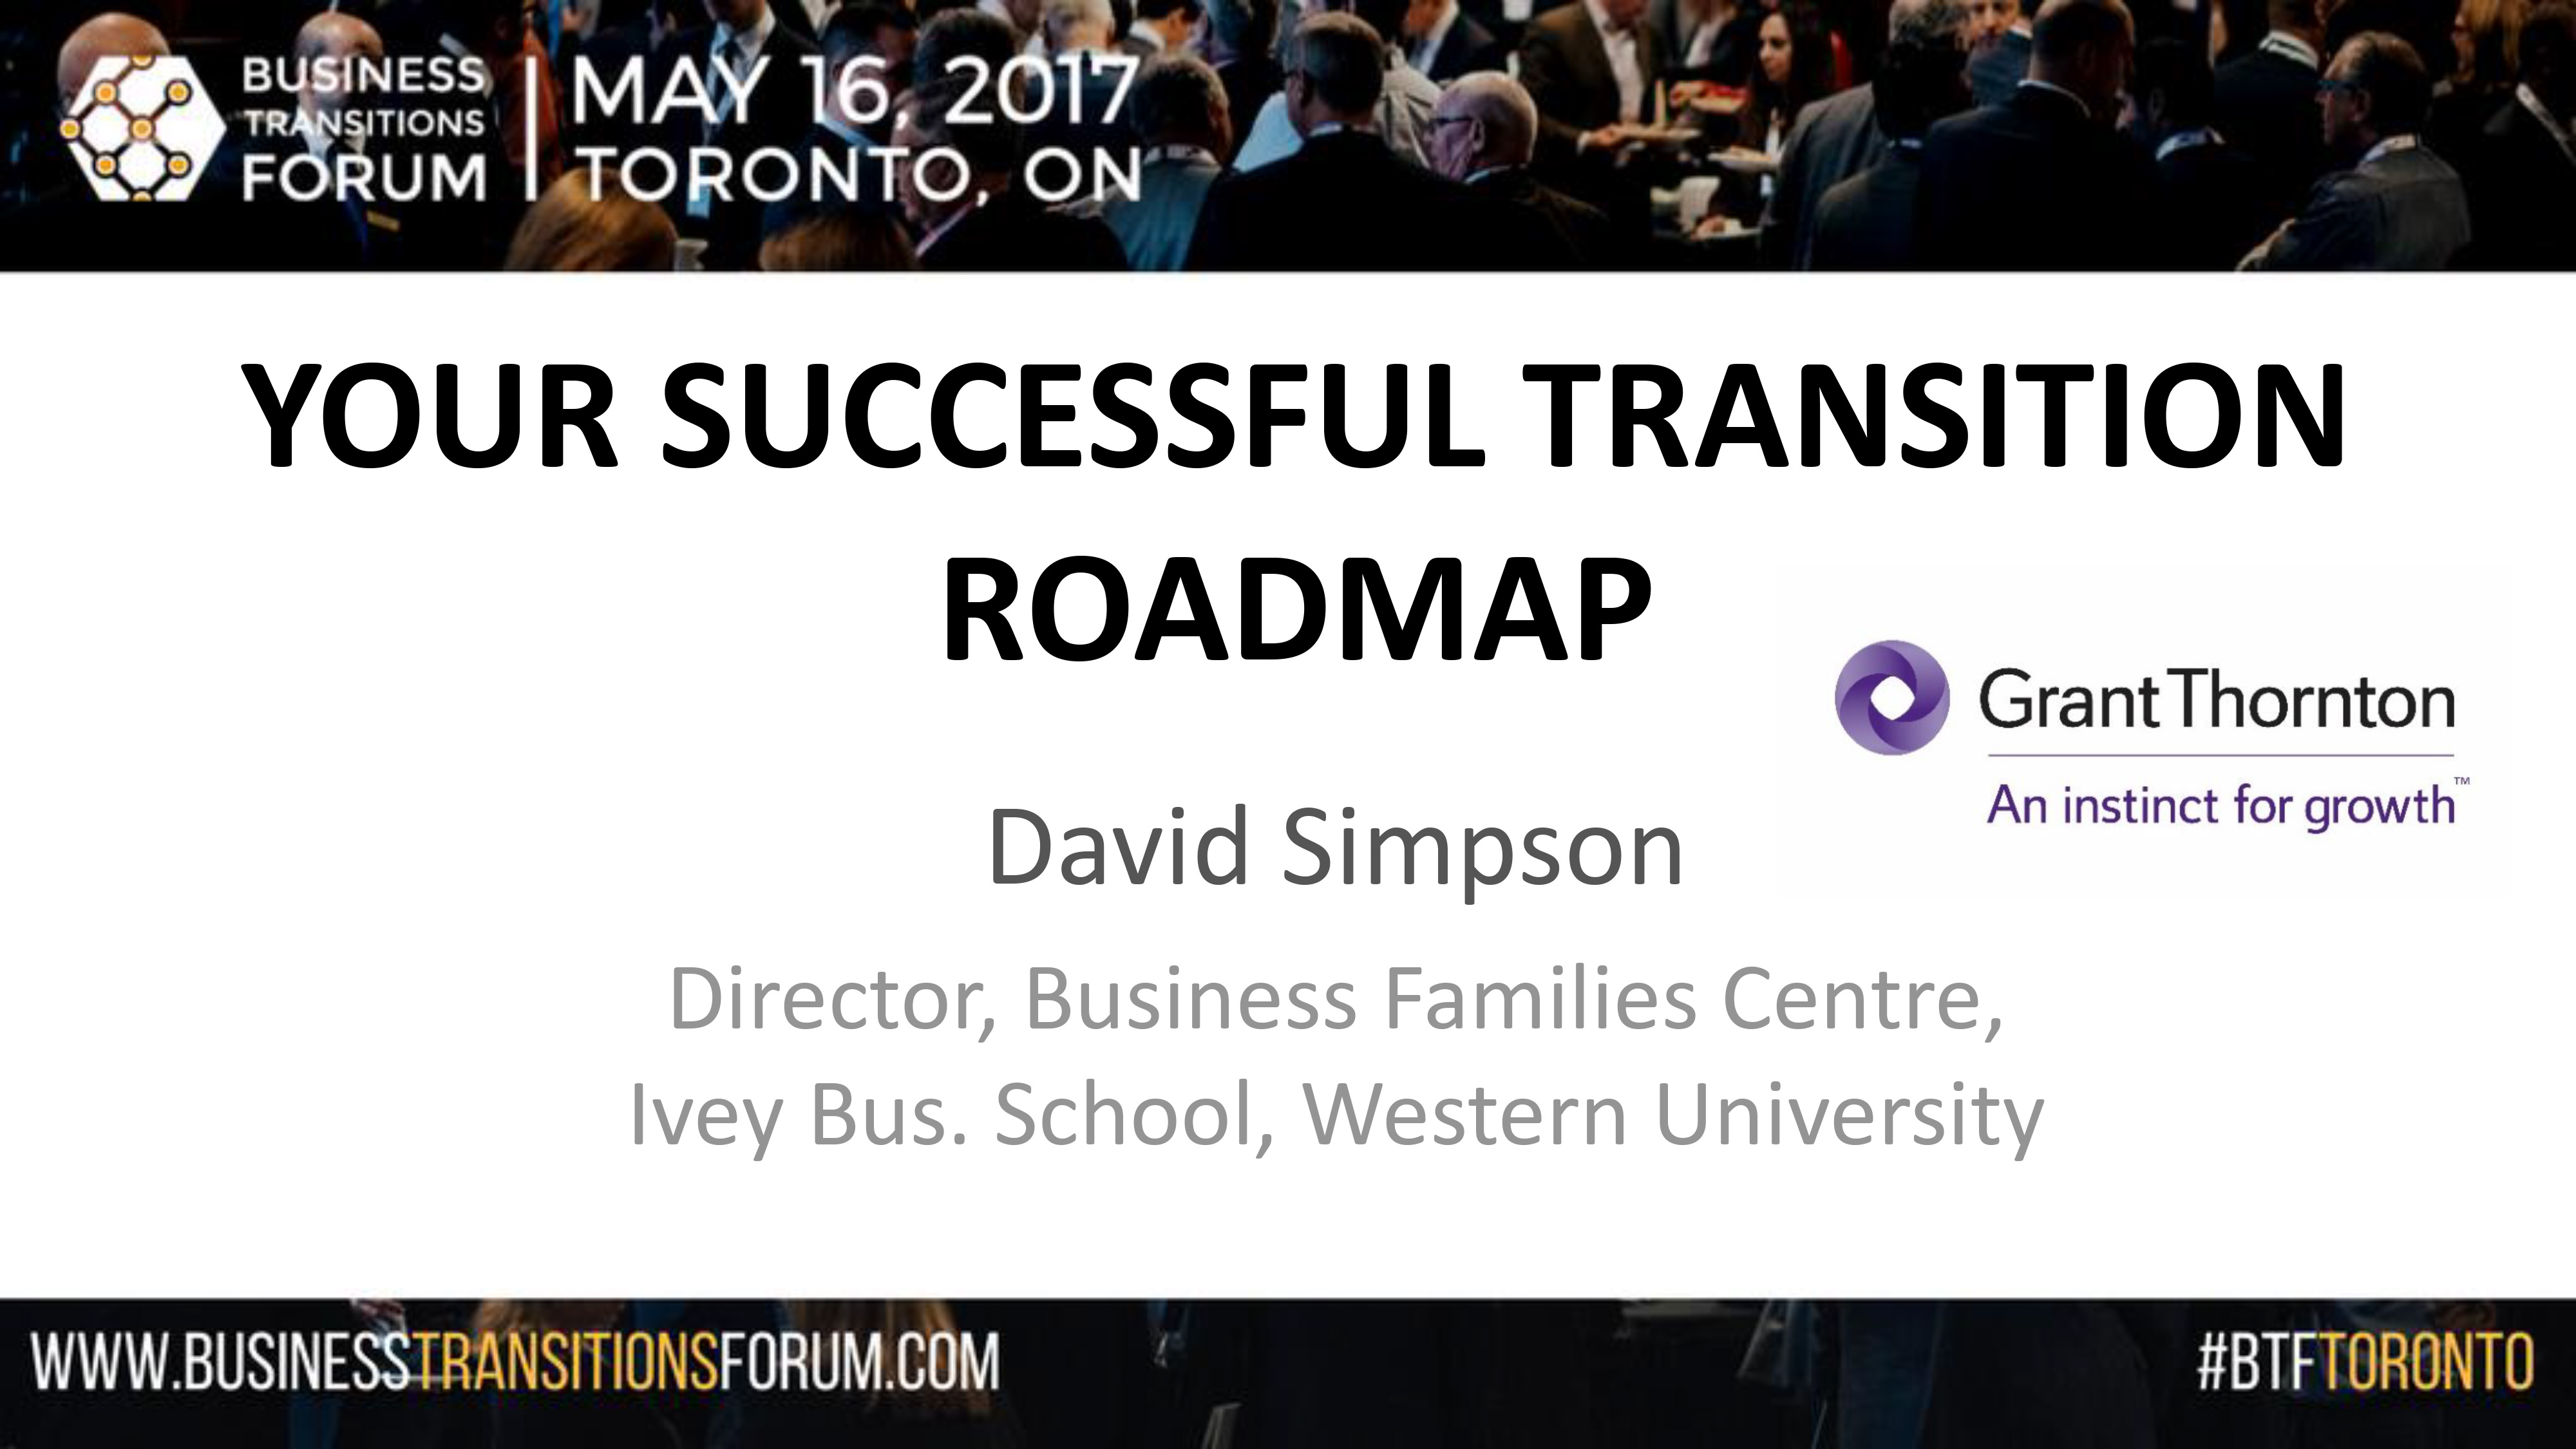 Your Successful Transition Roadmap